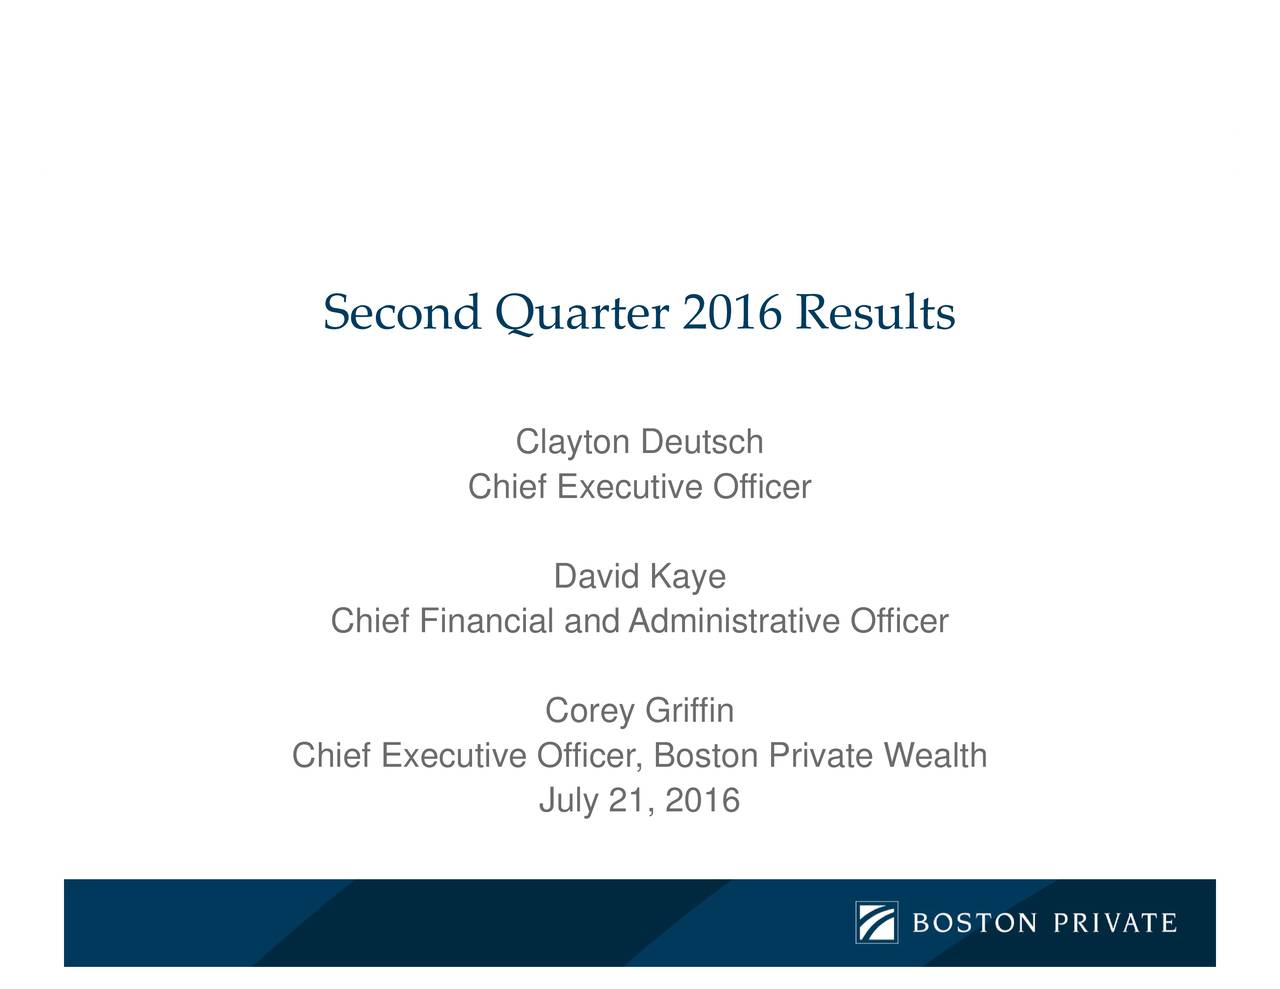 016 David KaCorey July 21, 2016 QuarterClayton Deutsch Chief Executive Officer Second Chief Financial and Administrative Officer Chief Executive Officer, Boston Private Wealth